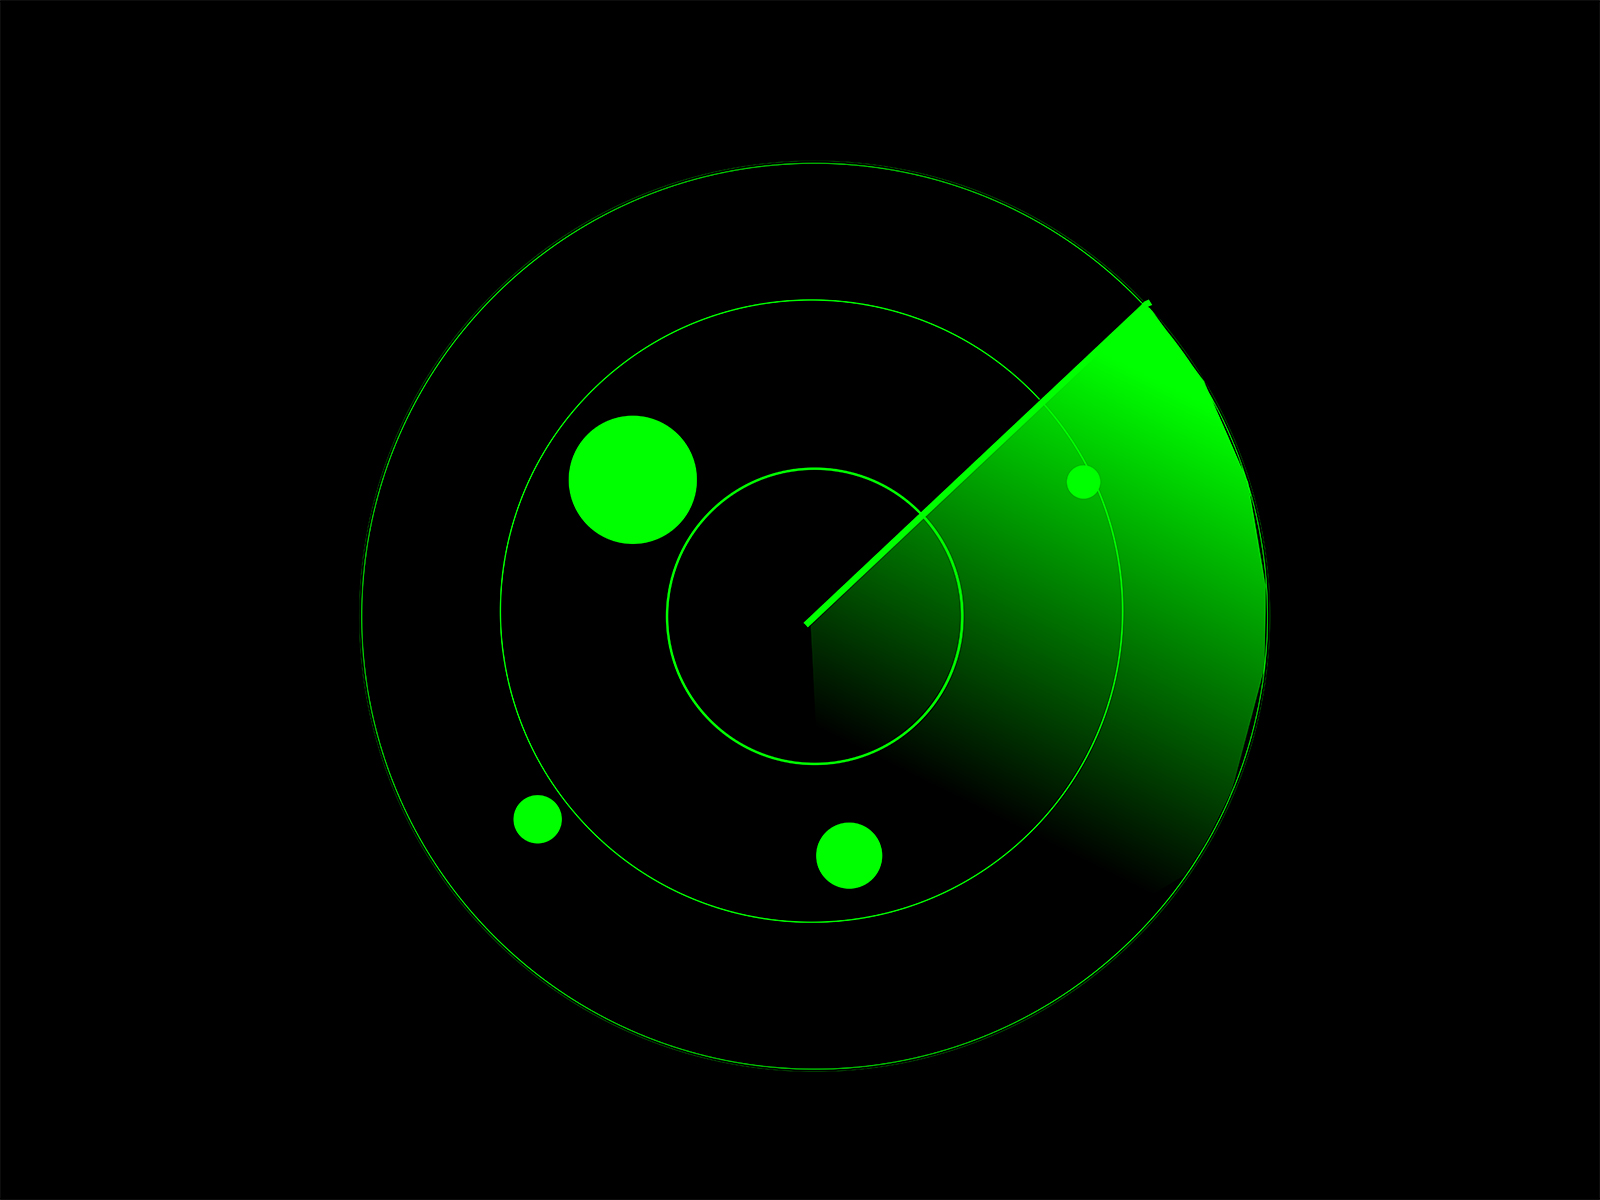 Radar Screen PPT Backgrounds